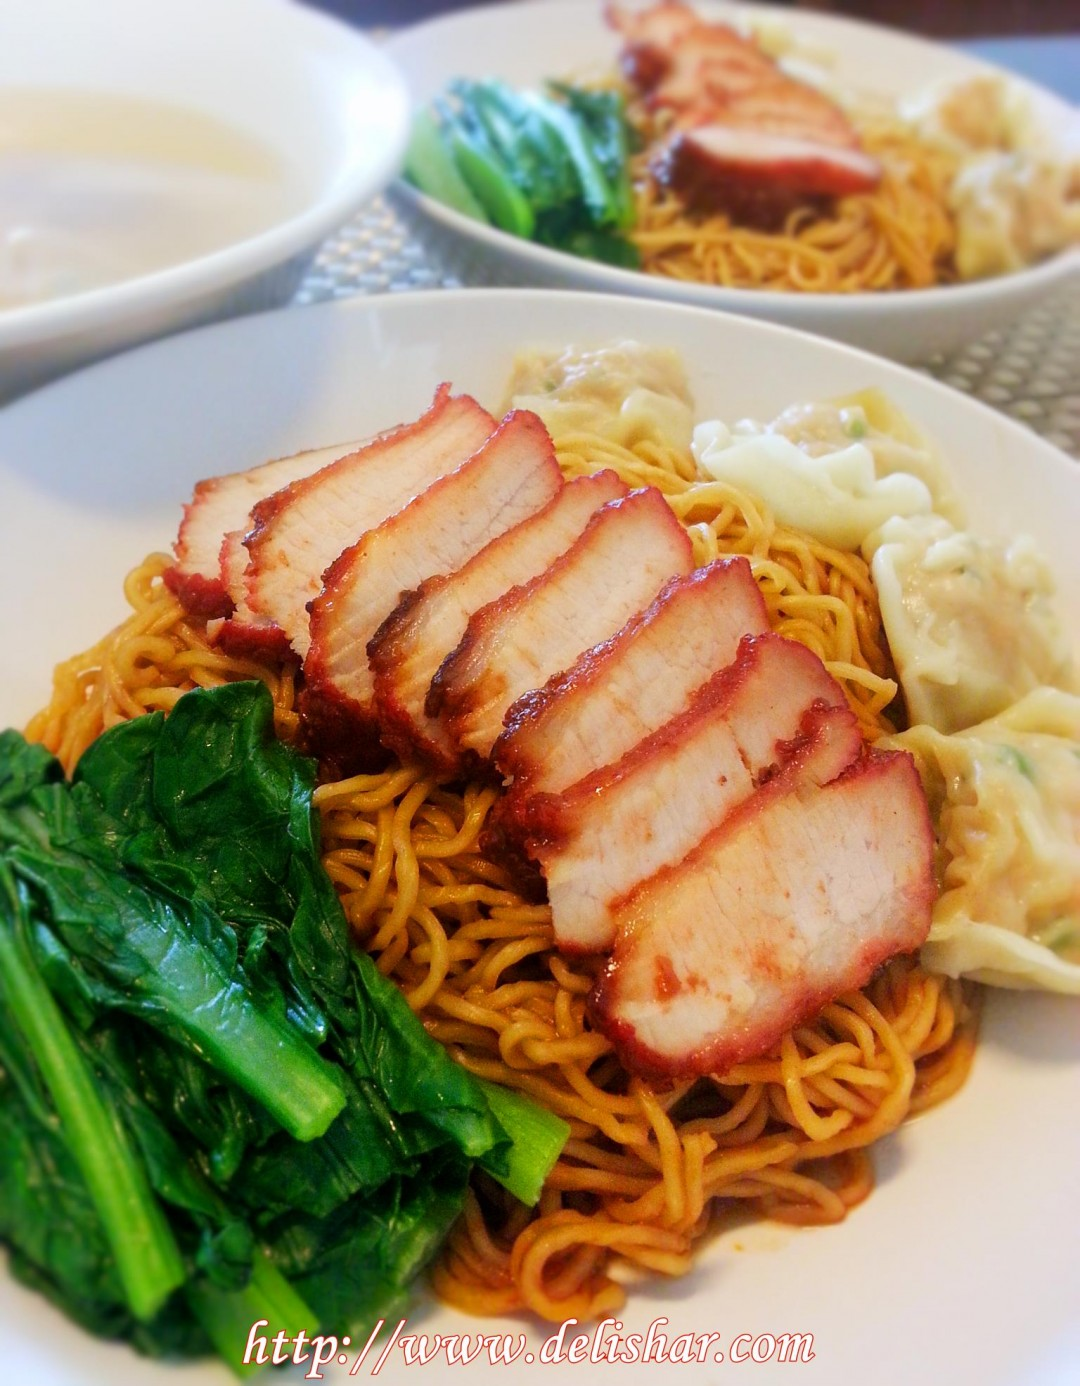 Char siew wanton noodles delishar singapore cooking blog char siew wanton noodles forumfinder Image collections